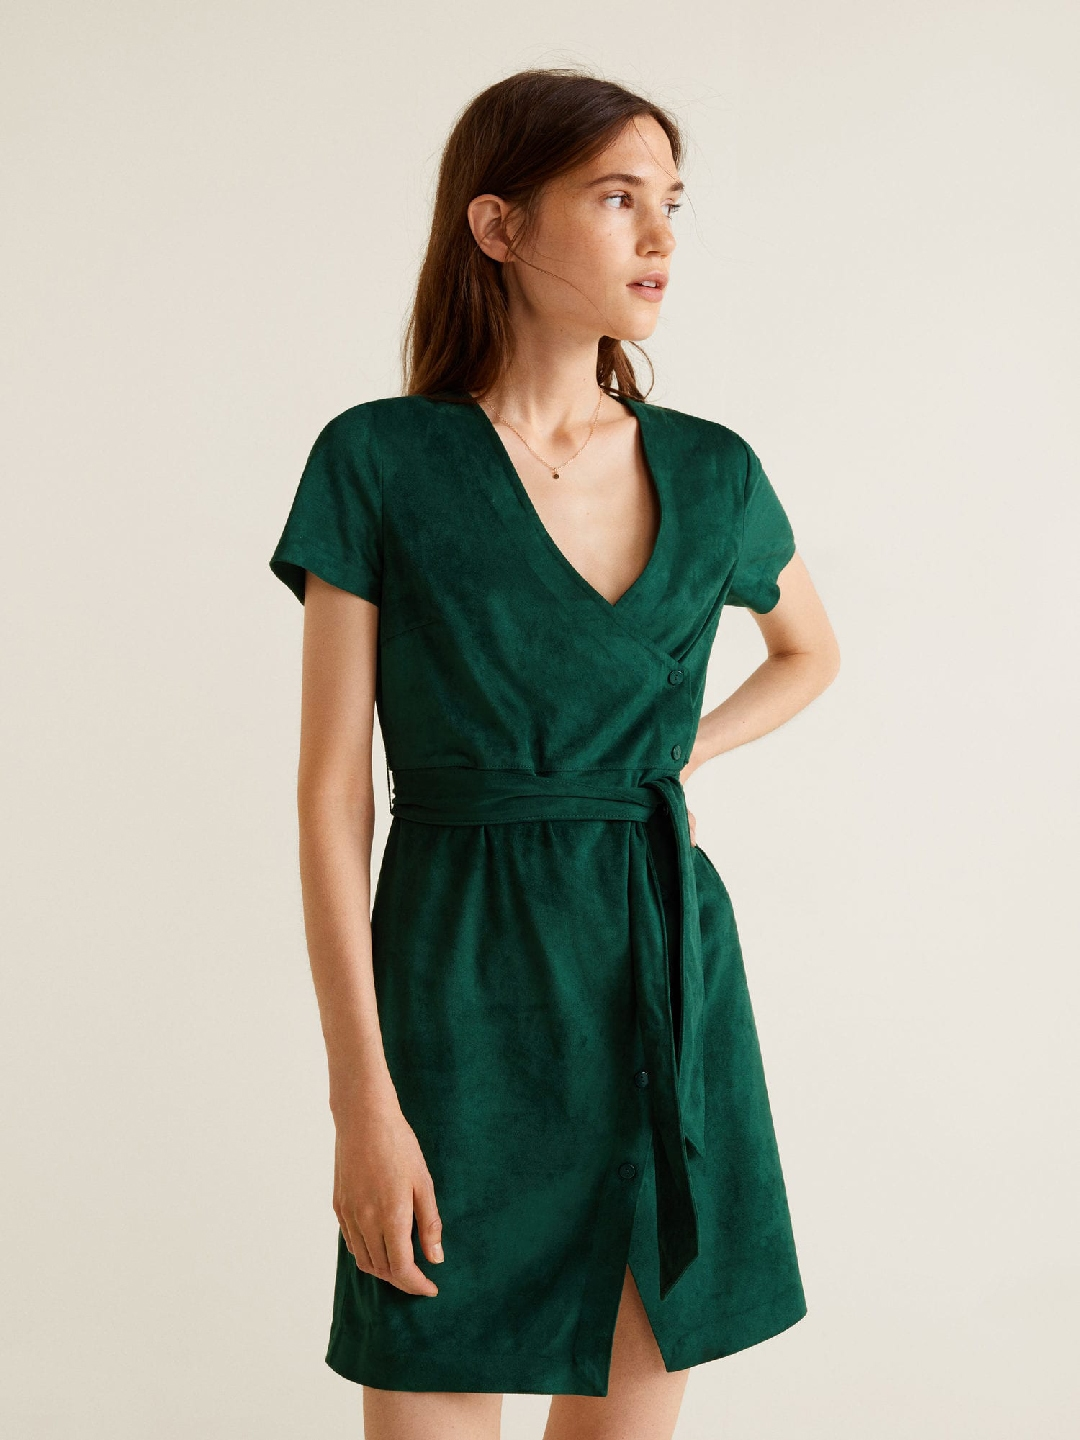 3297c9260 Buy MANGO Women Green Solid Suede Finish Wrap Dress - Dresses for ...